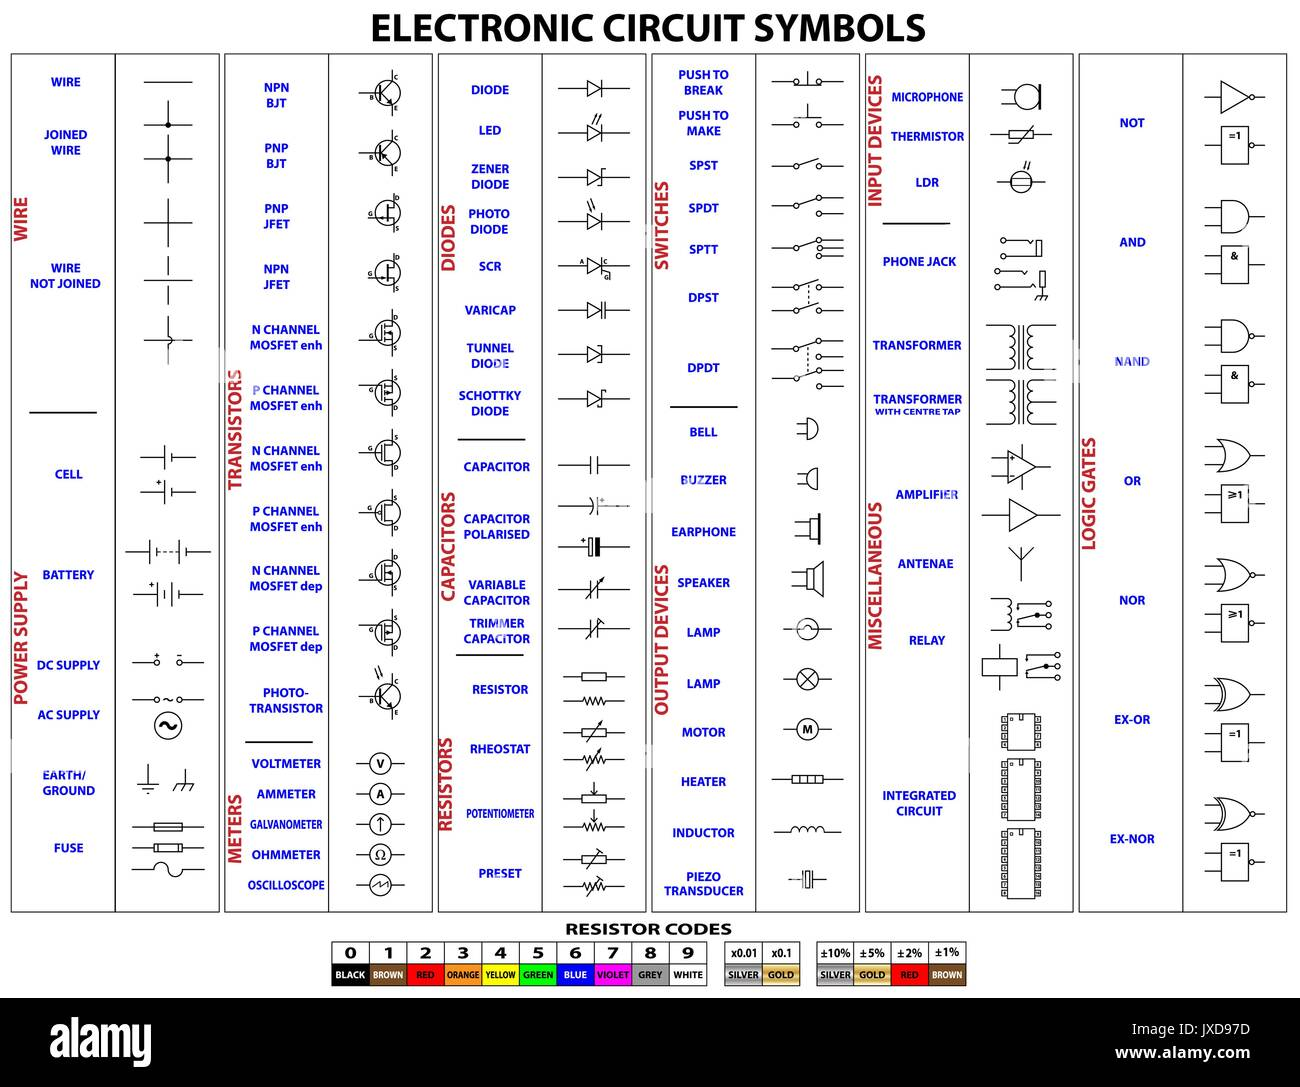 Complete set of electronic circuit symbols and resistor codes complete set of electronic circuit symbols and resistor codes biocorpaavc Gallery